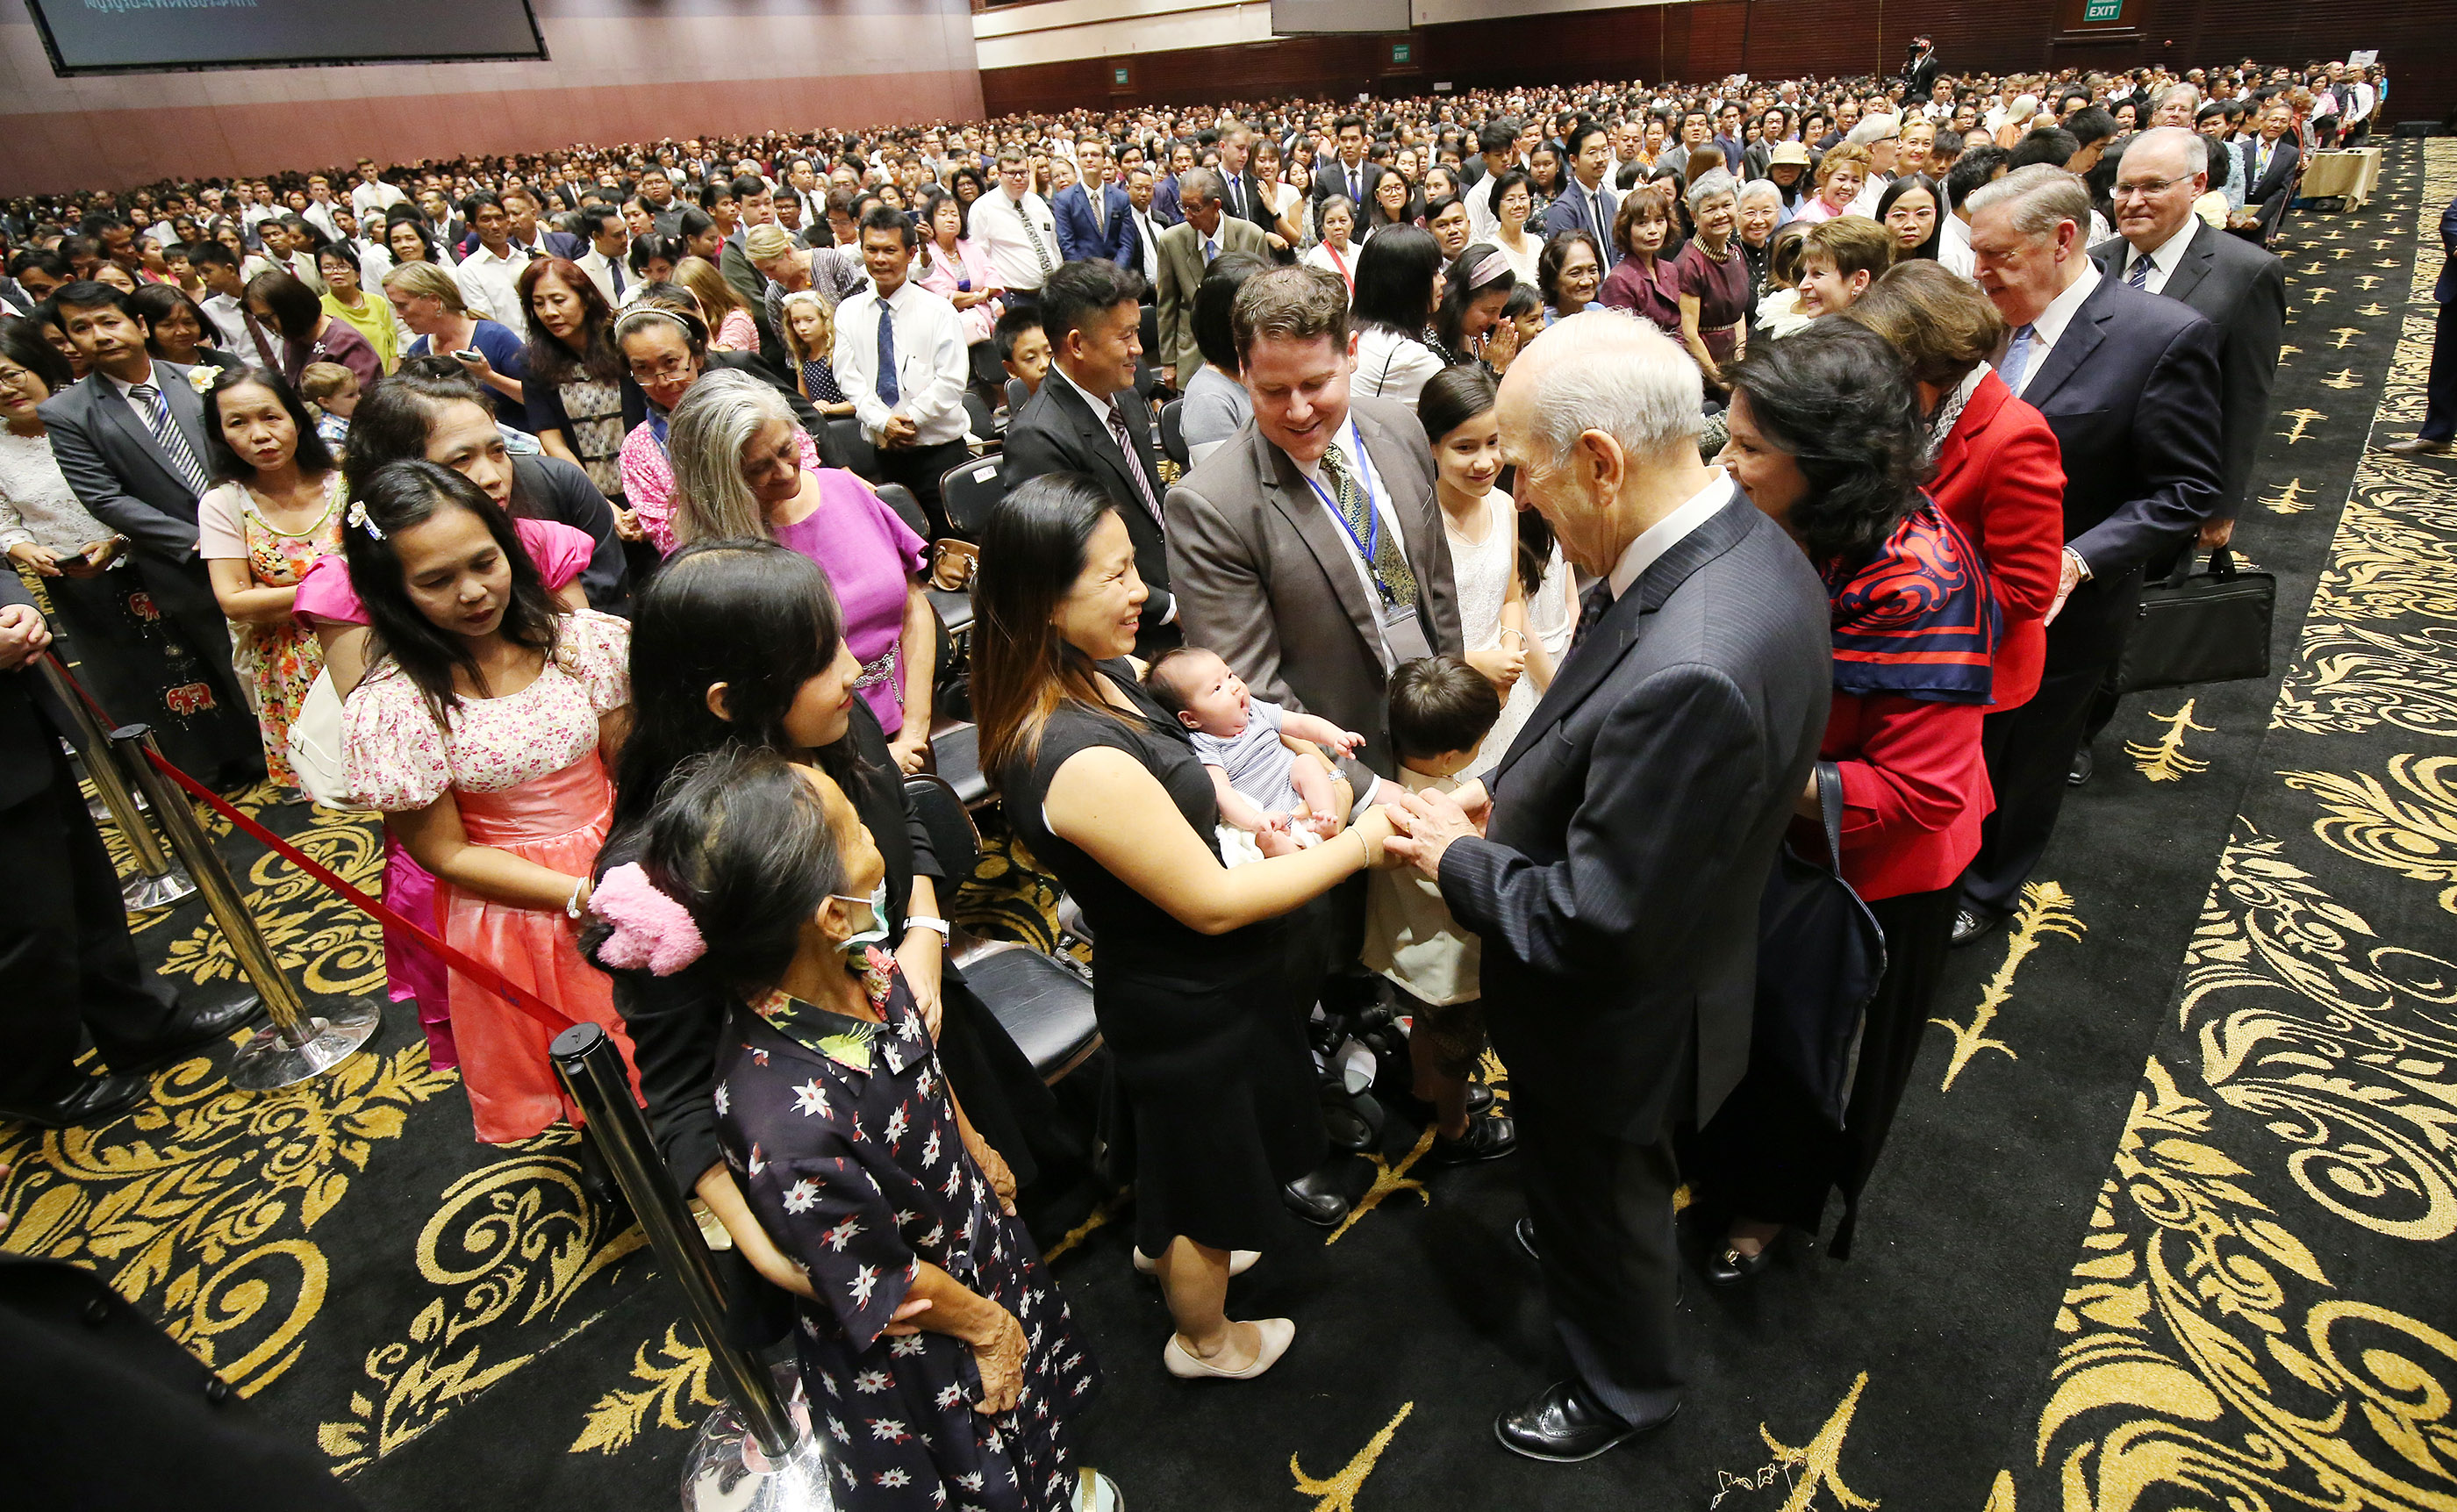 President Russell M. Nelson and his wife, Sister Wendy Nelson, and Elder Jeffrey R. Holland, Quorum of the Twelve Apostles, and Sister Patricia Holland shake hands after a devotional in Bangkok, Thailand, on Friday, April 20, 2018.